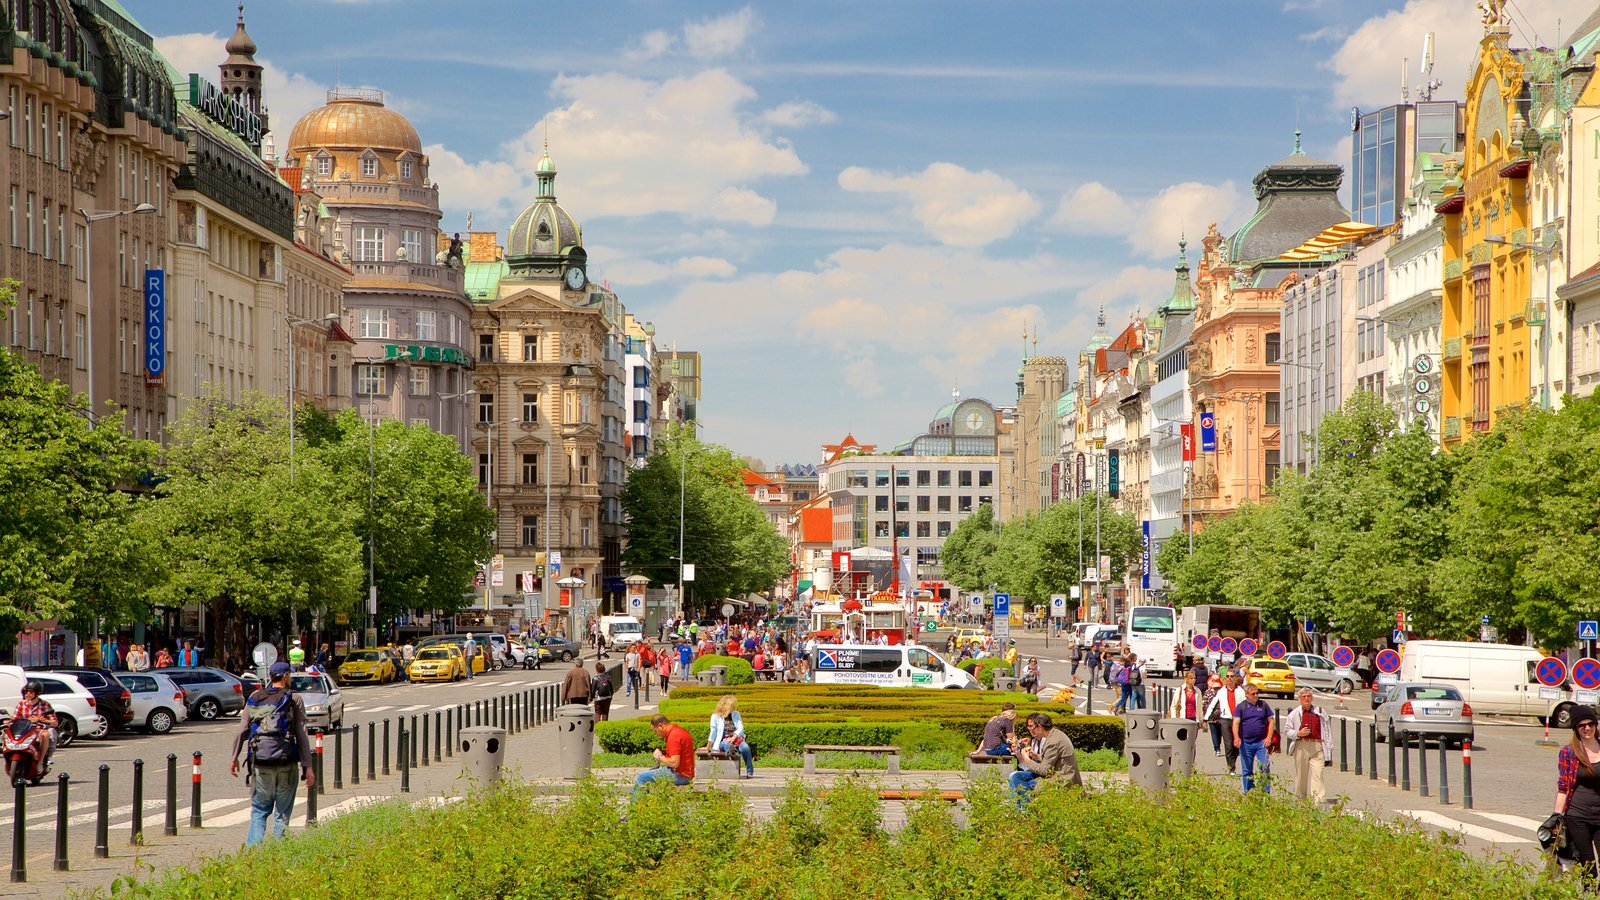 Wenceslas square pictures view photos images of for Prague square